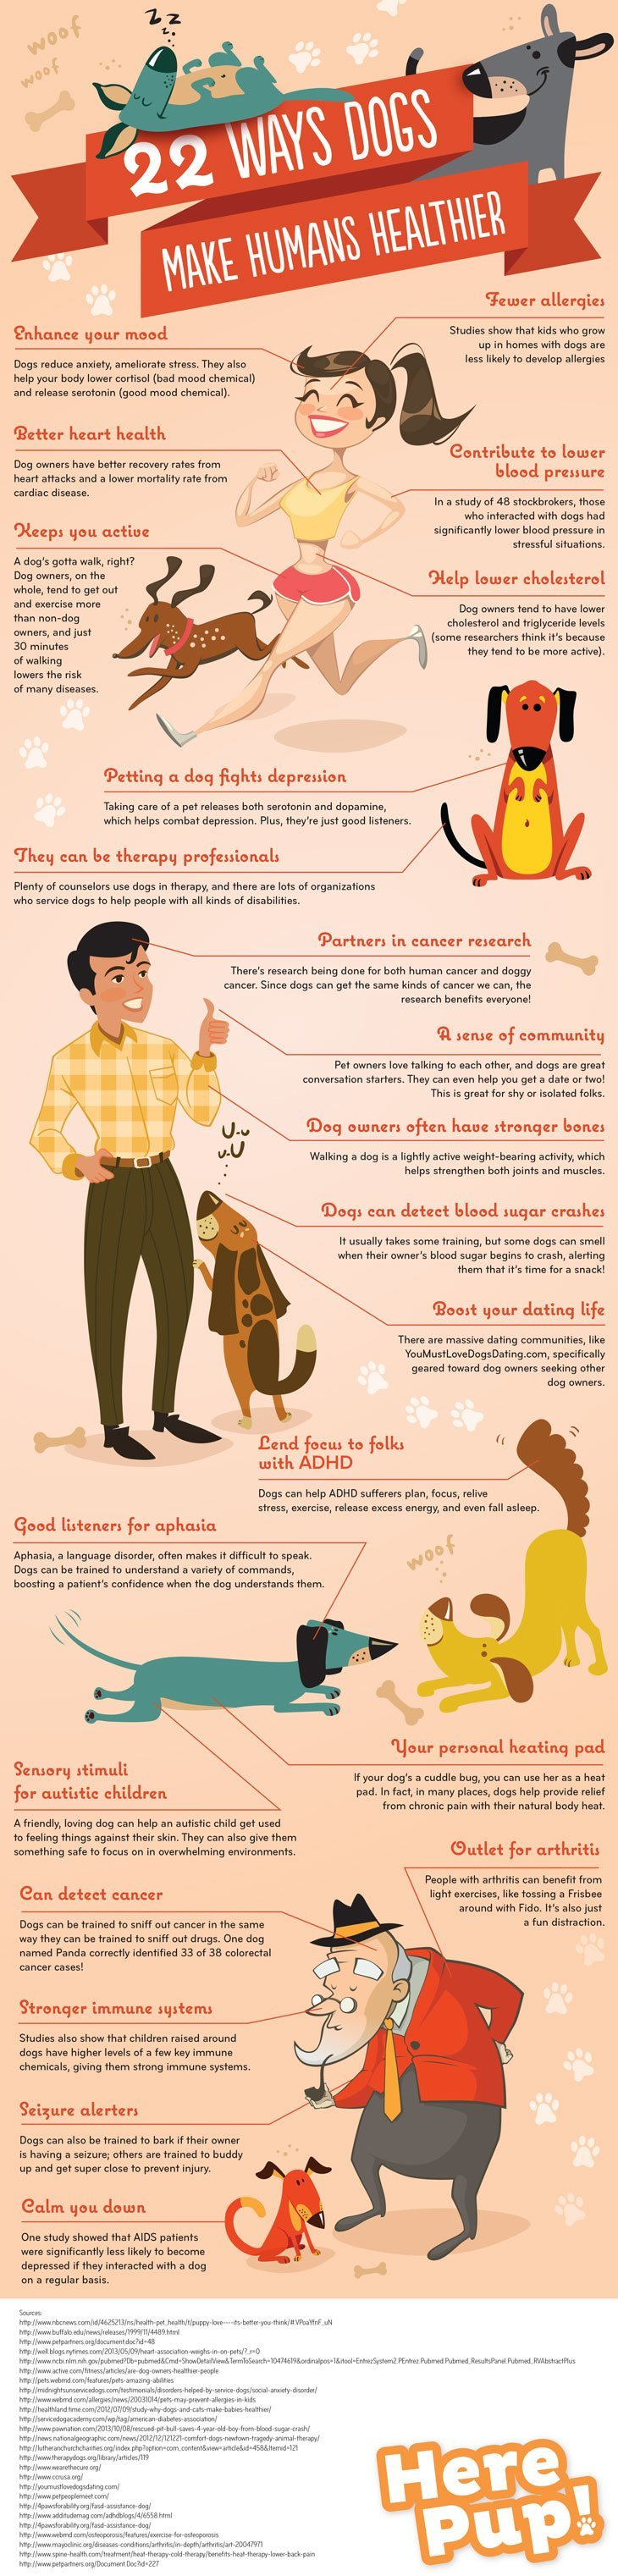 22 Ways Dogs Make Humans Healthier